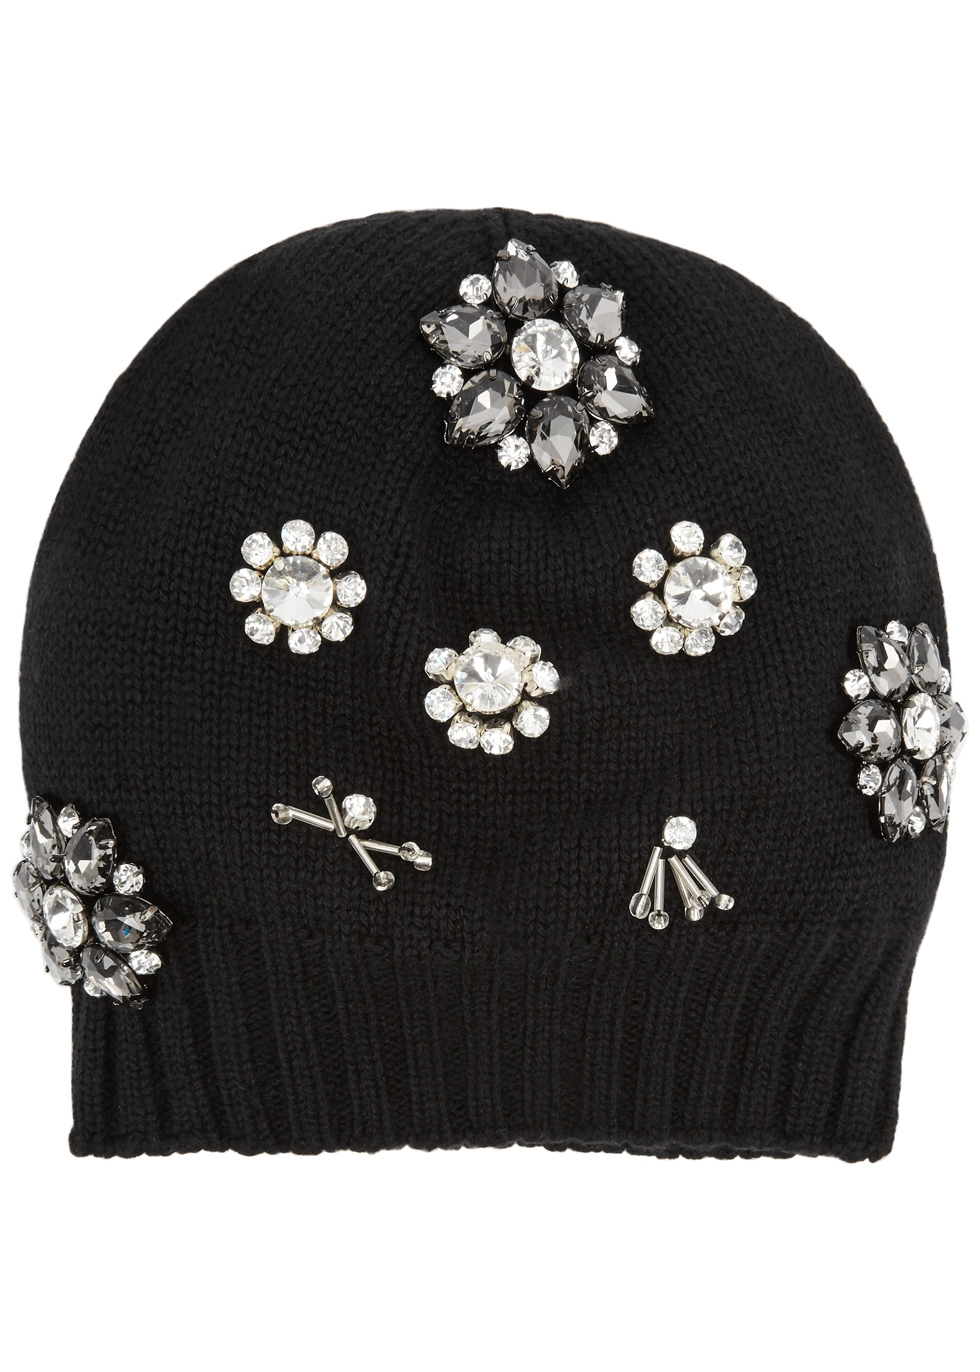 THATSAHAT ! Black Embellished Wool-Blend Beanie